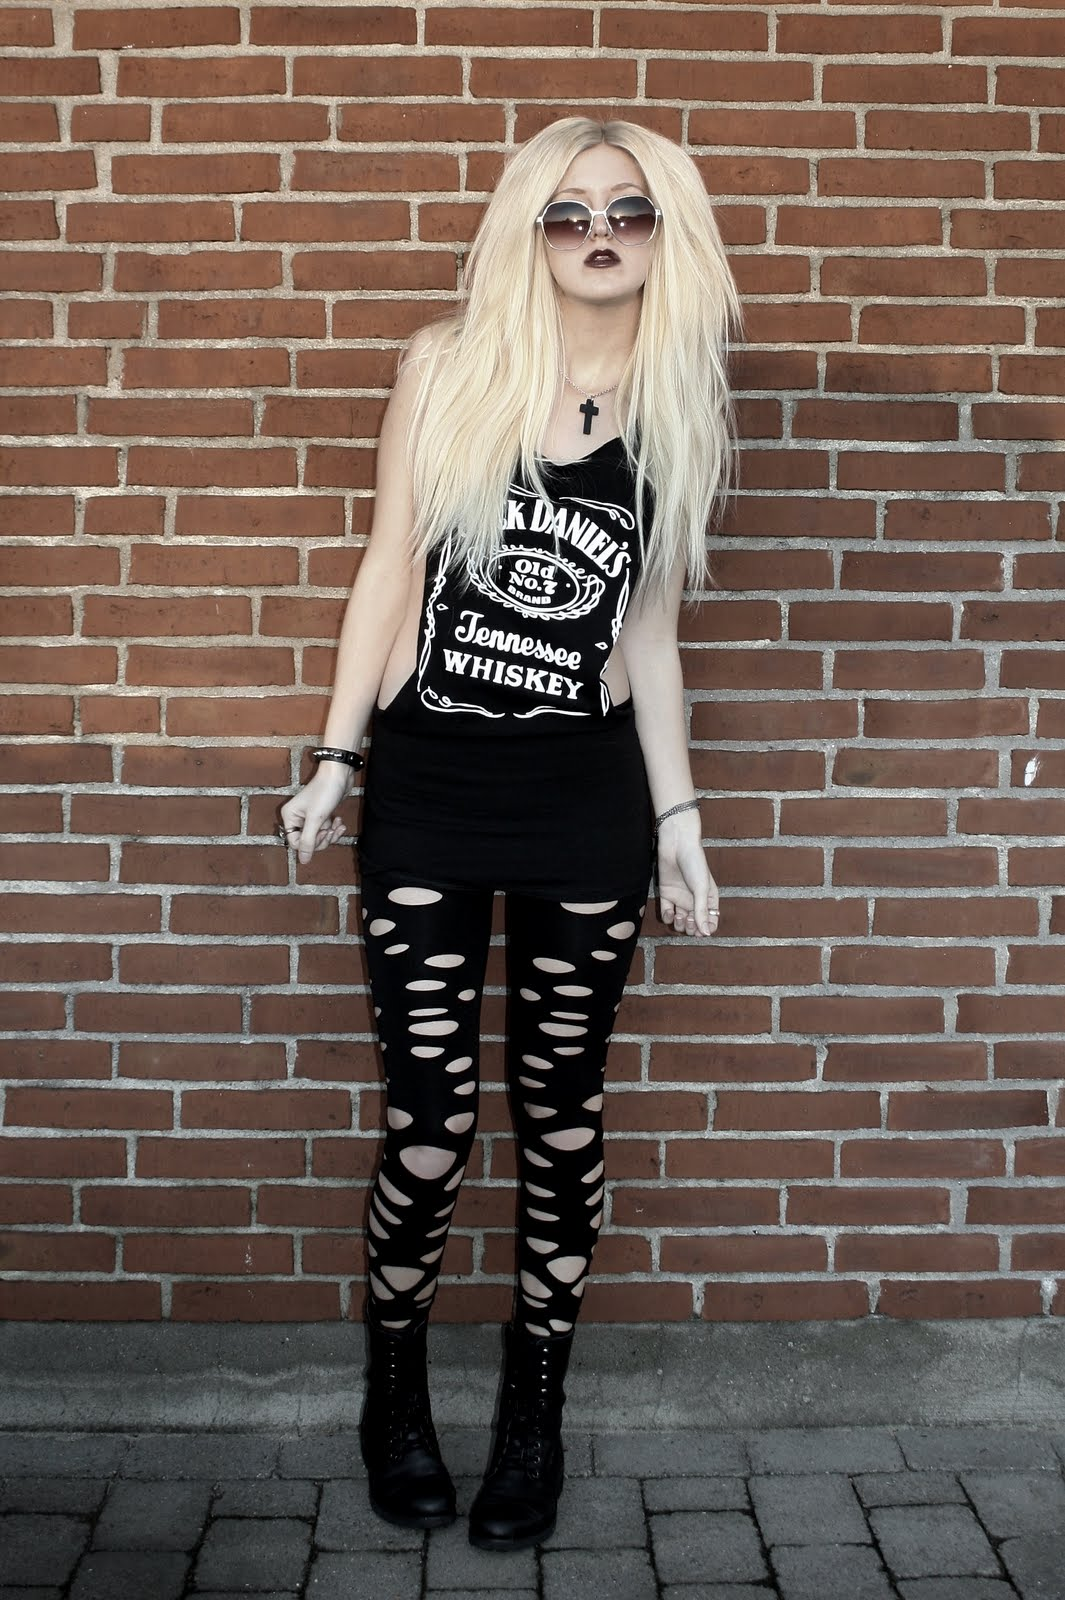 Punk fashion for ladies Punk Rock Clothing Your Online Hotspot for Punk Rock